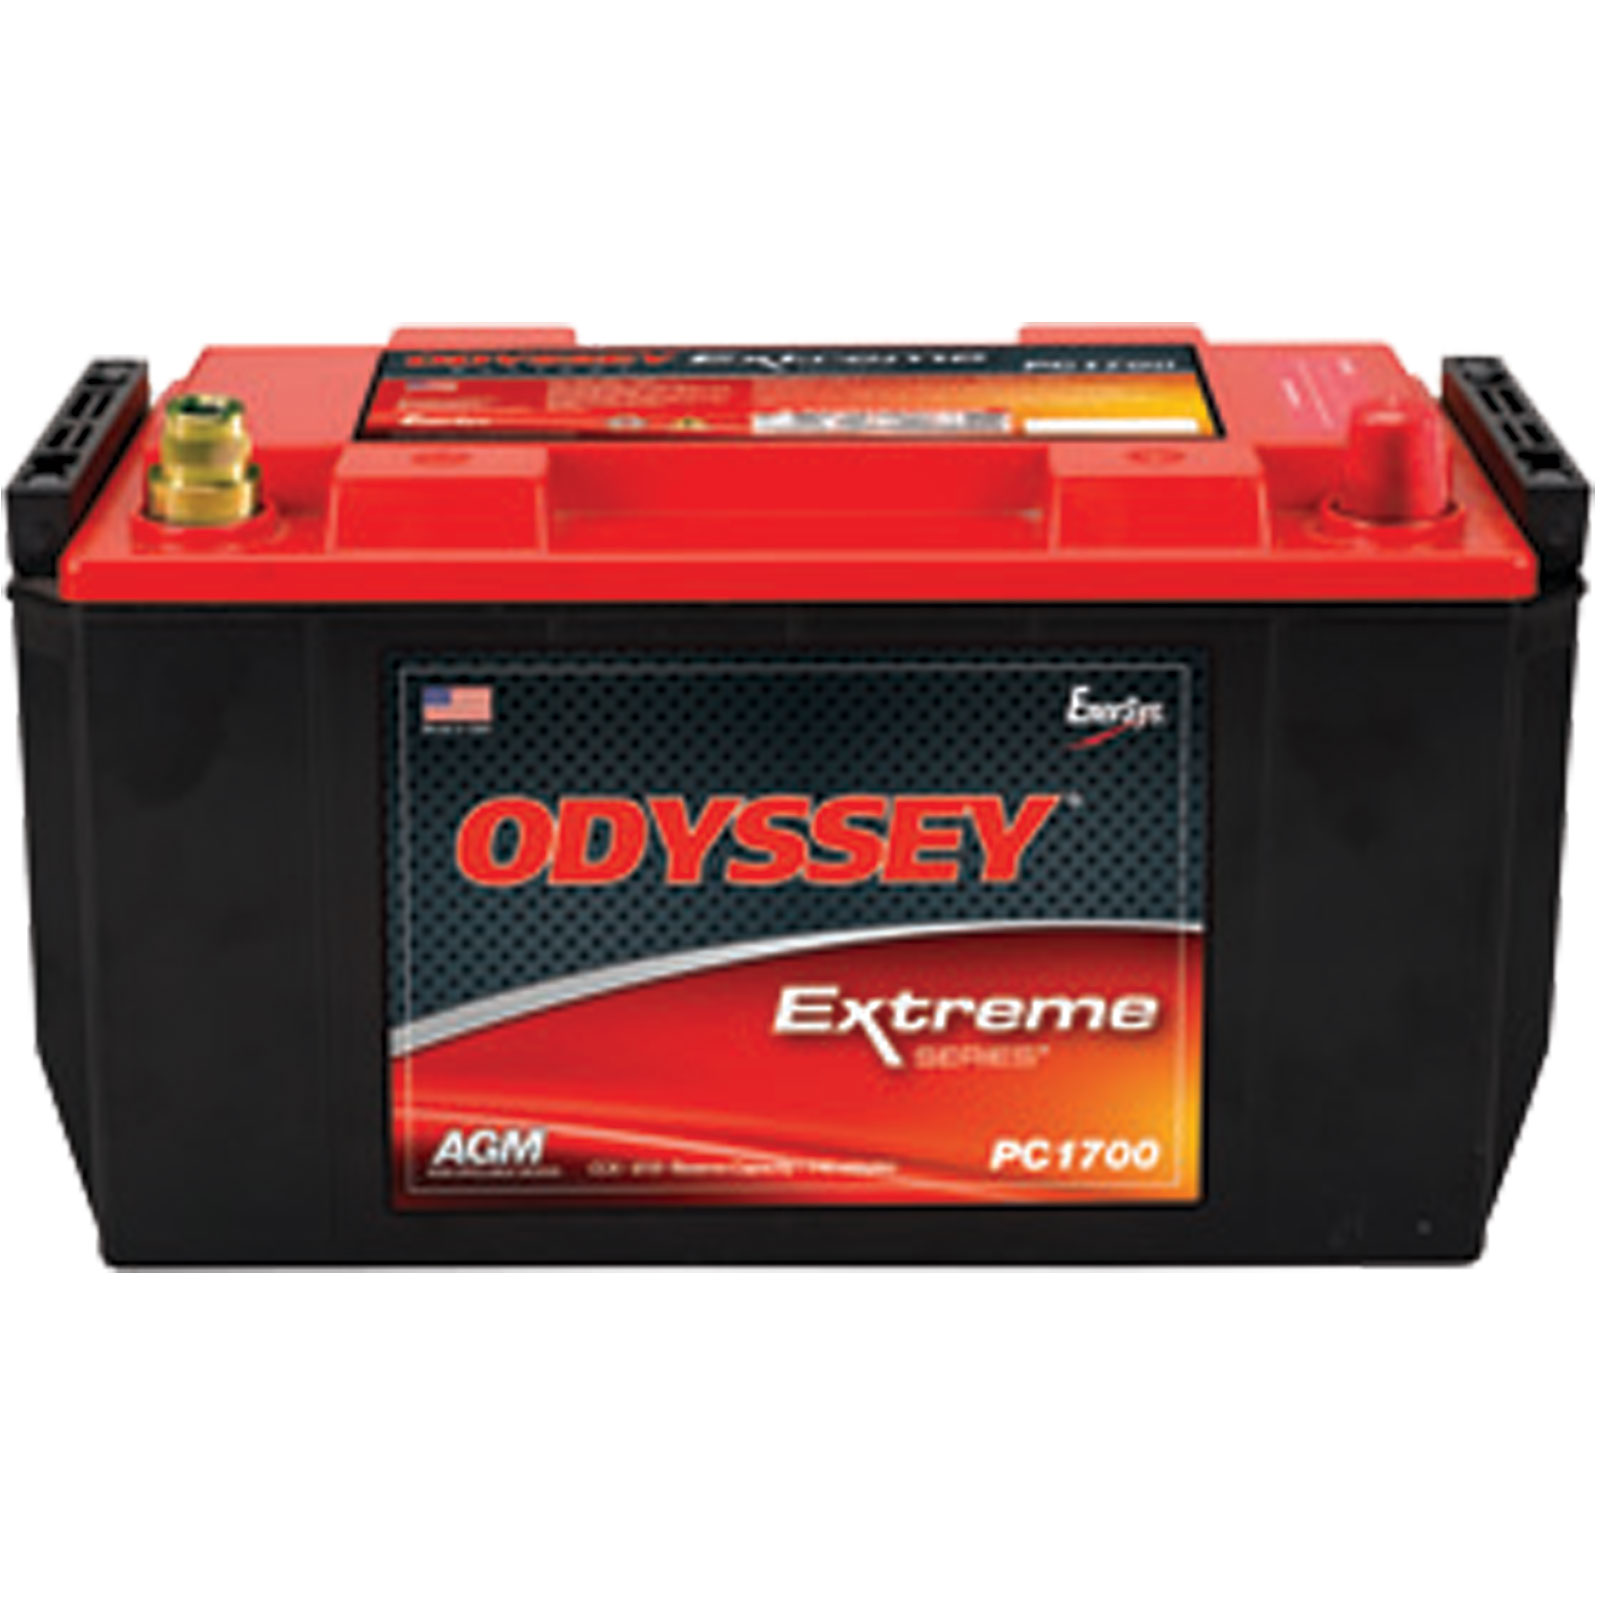 odyssey extreme pc1700t 810cca sealed agm automotive car battery 5 day wait ebay. Black Bedroom Furniture Sets. Home Design Ideas